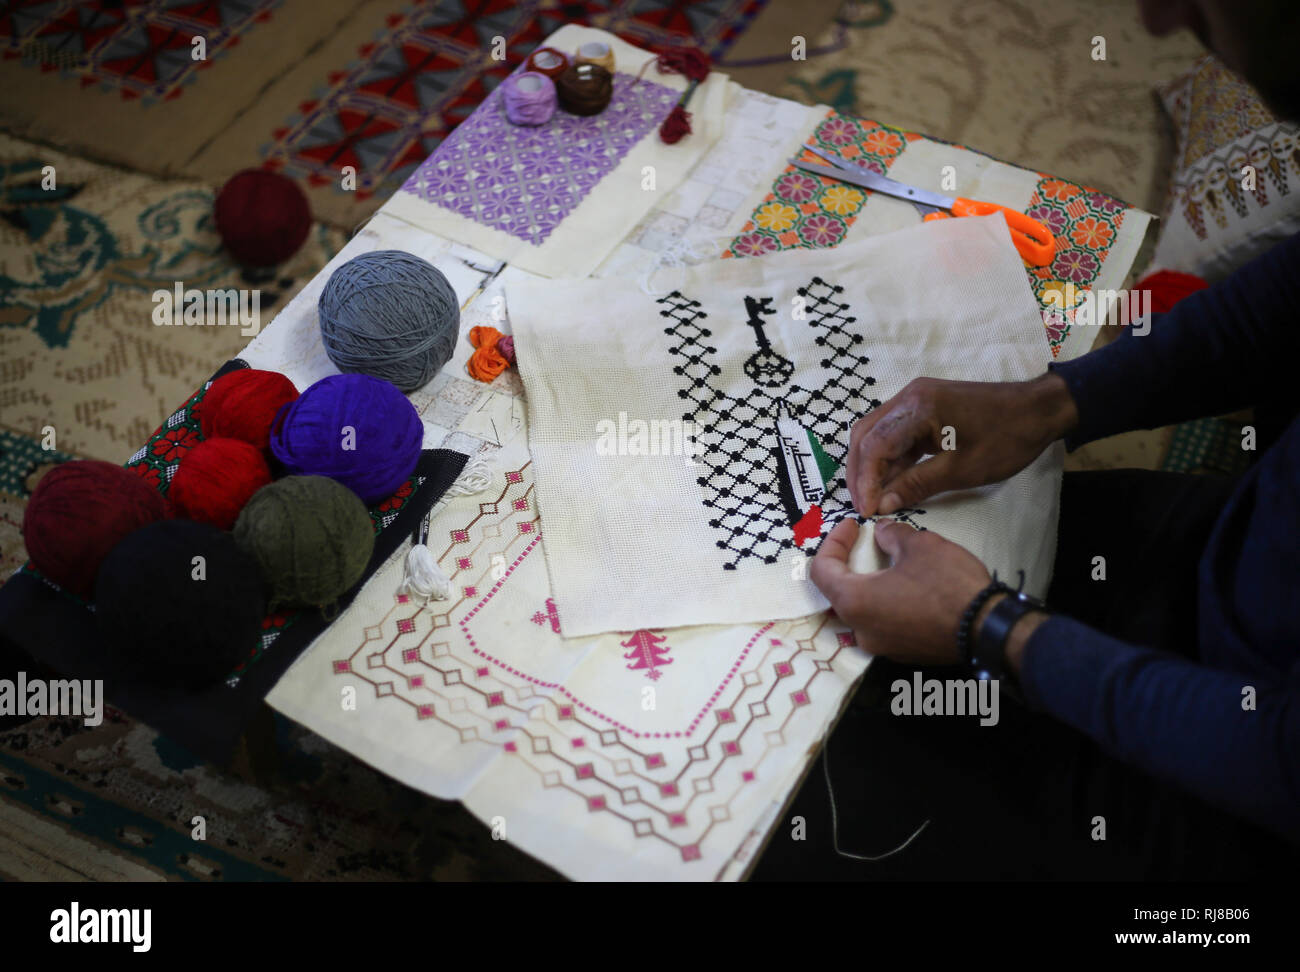 Suleiman Abu seen doing embroidery work.  Palestinian young man Suleiman Abu Taima 23 years inherited the embroidery profession from his mother and work in the absence of job opportunities and the worsening economic situation and the siege on the Gaza Strip. - Stock Image